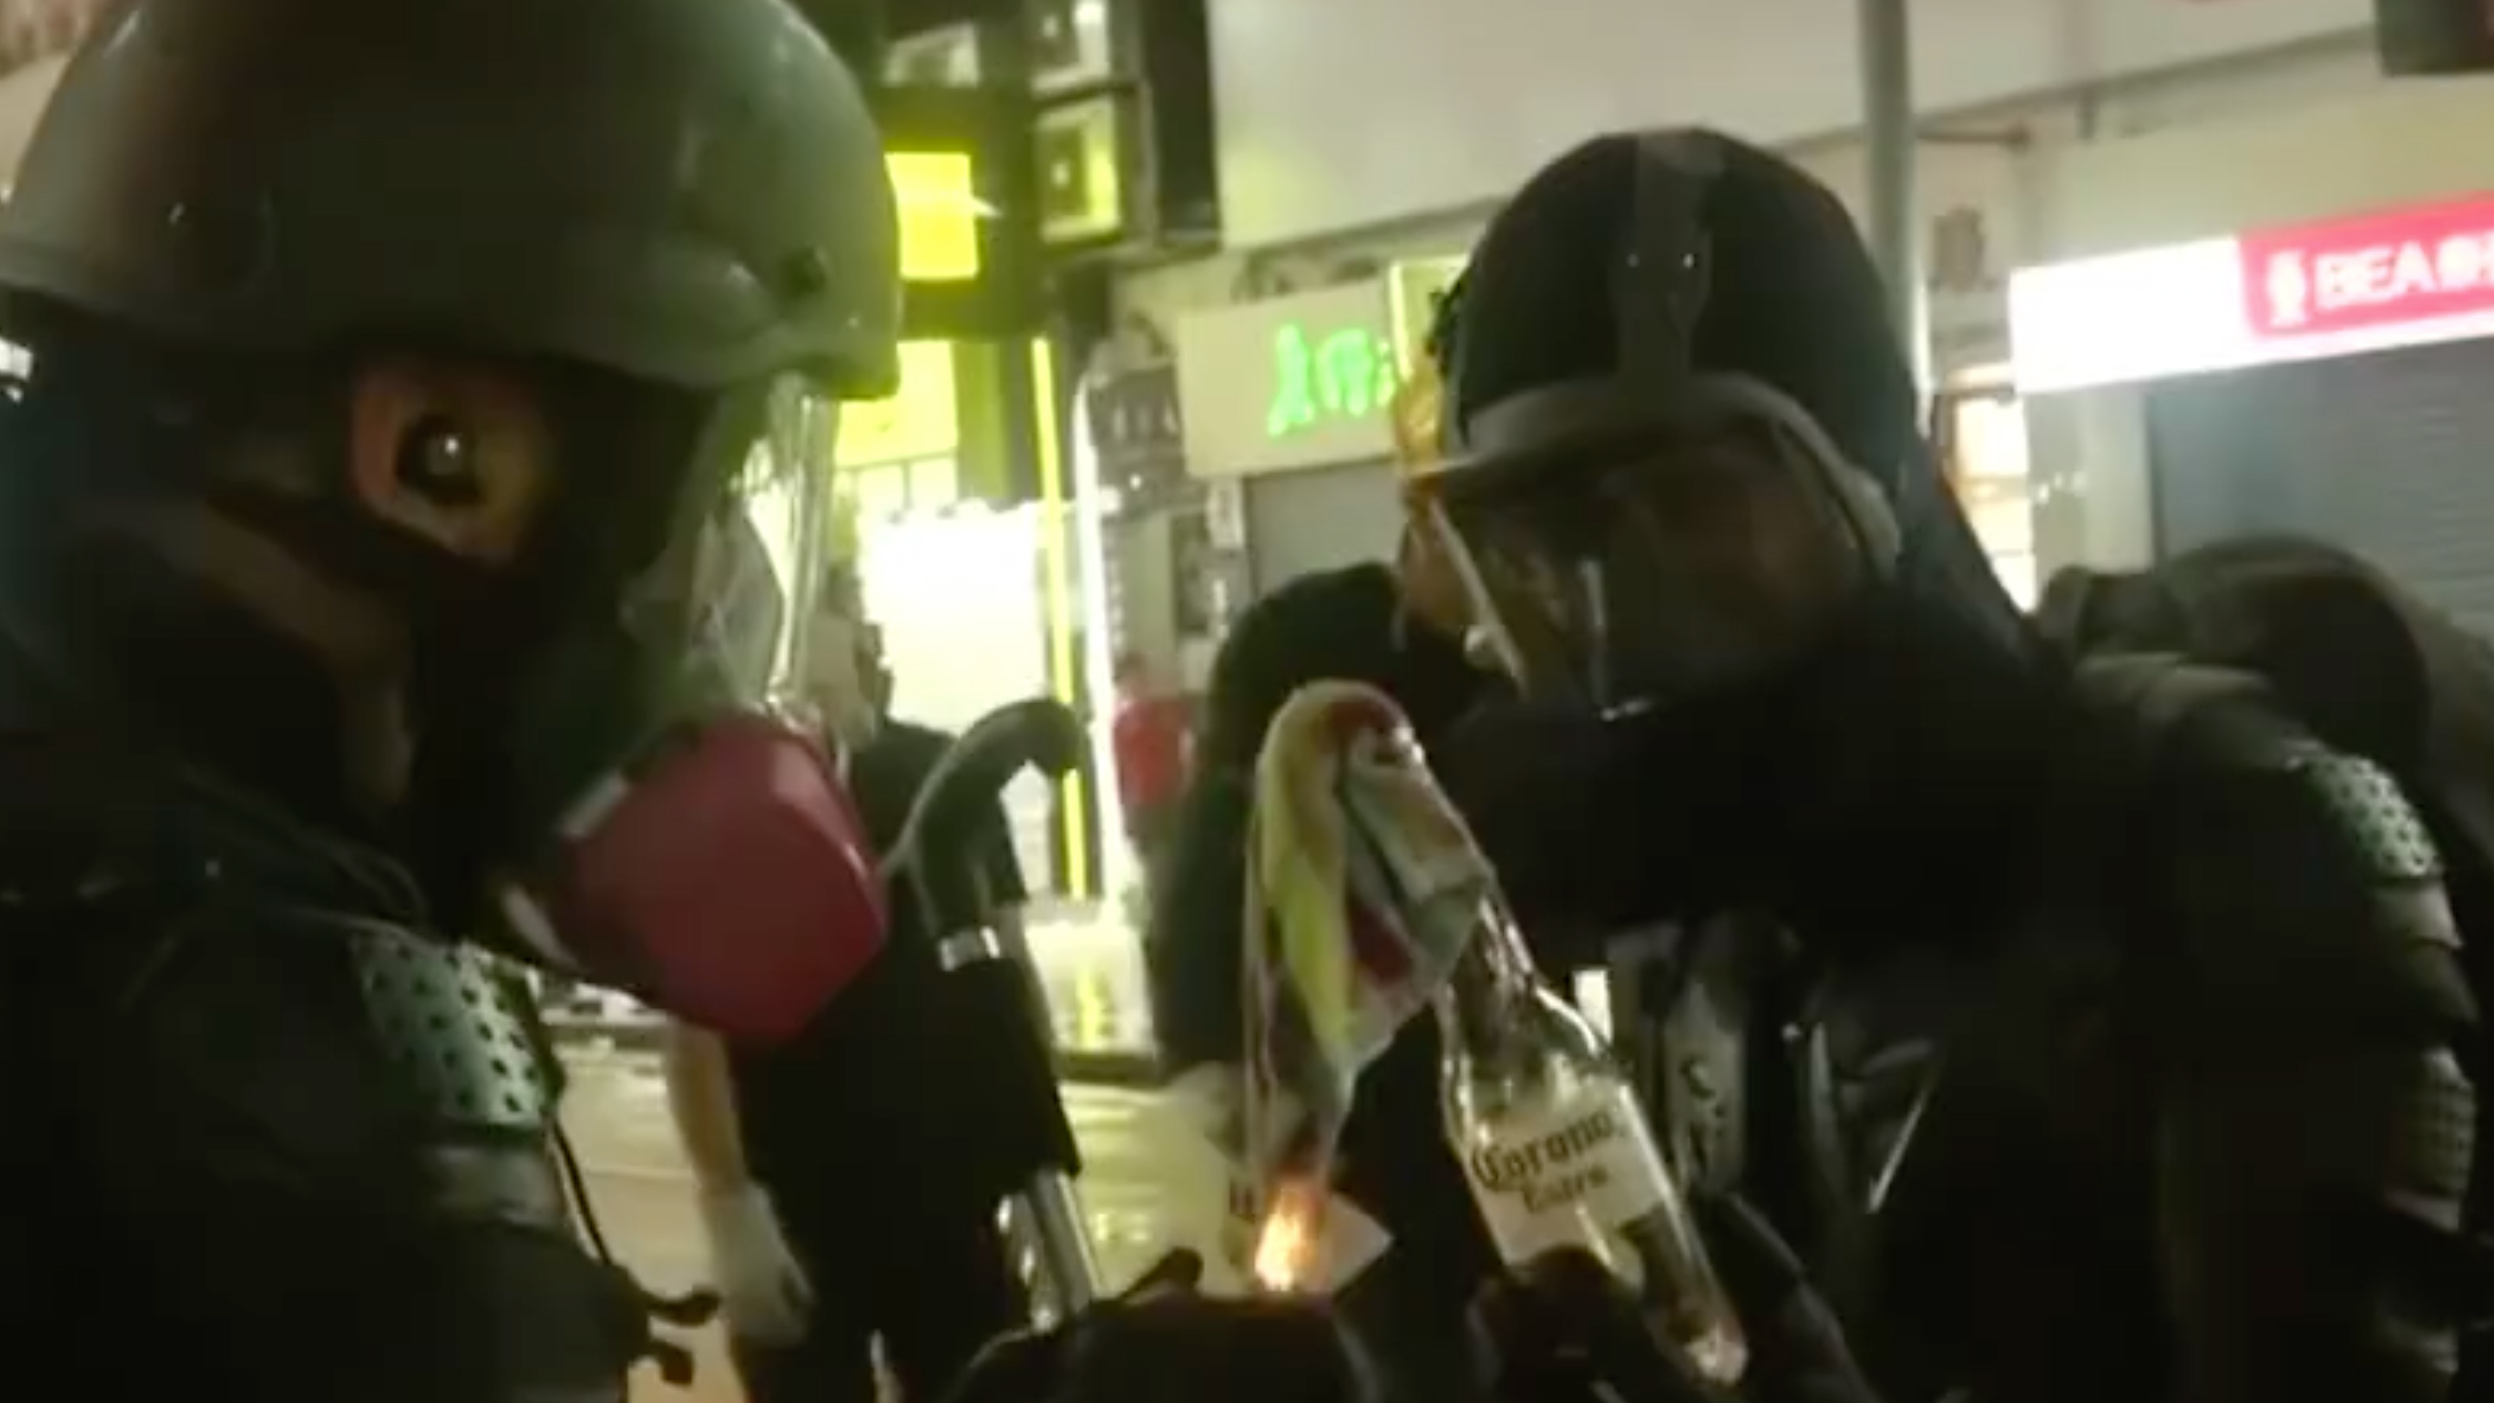 HK police seize homemade weapons from radical protesters